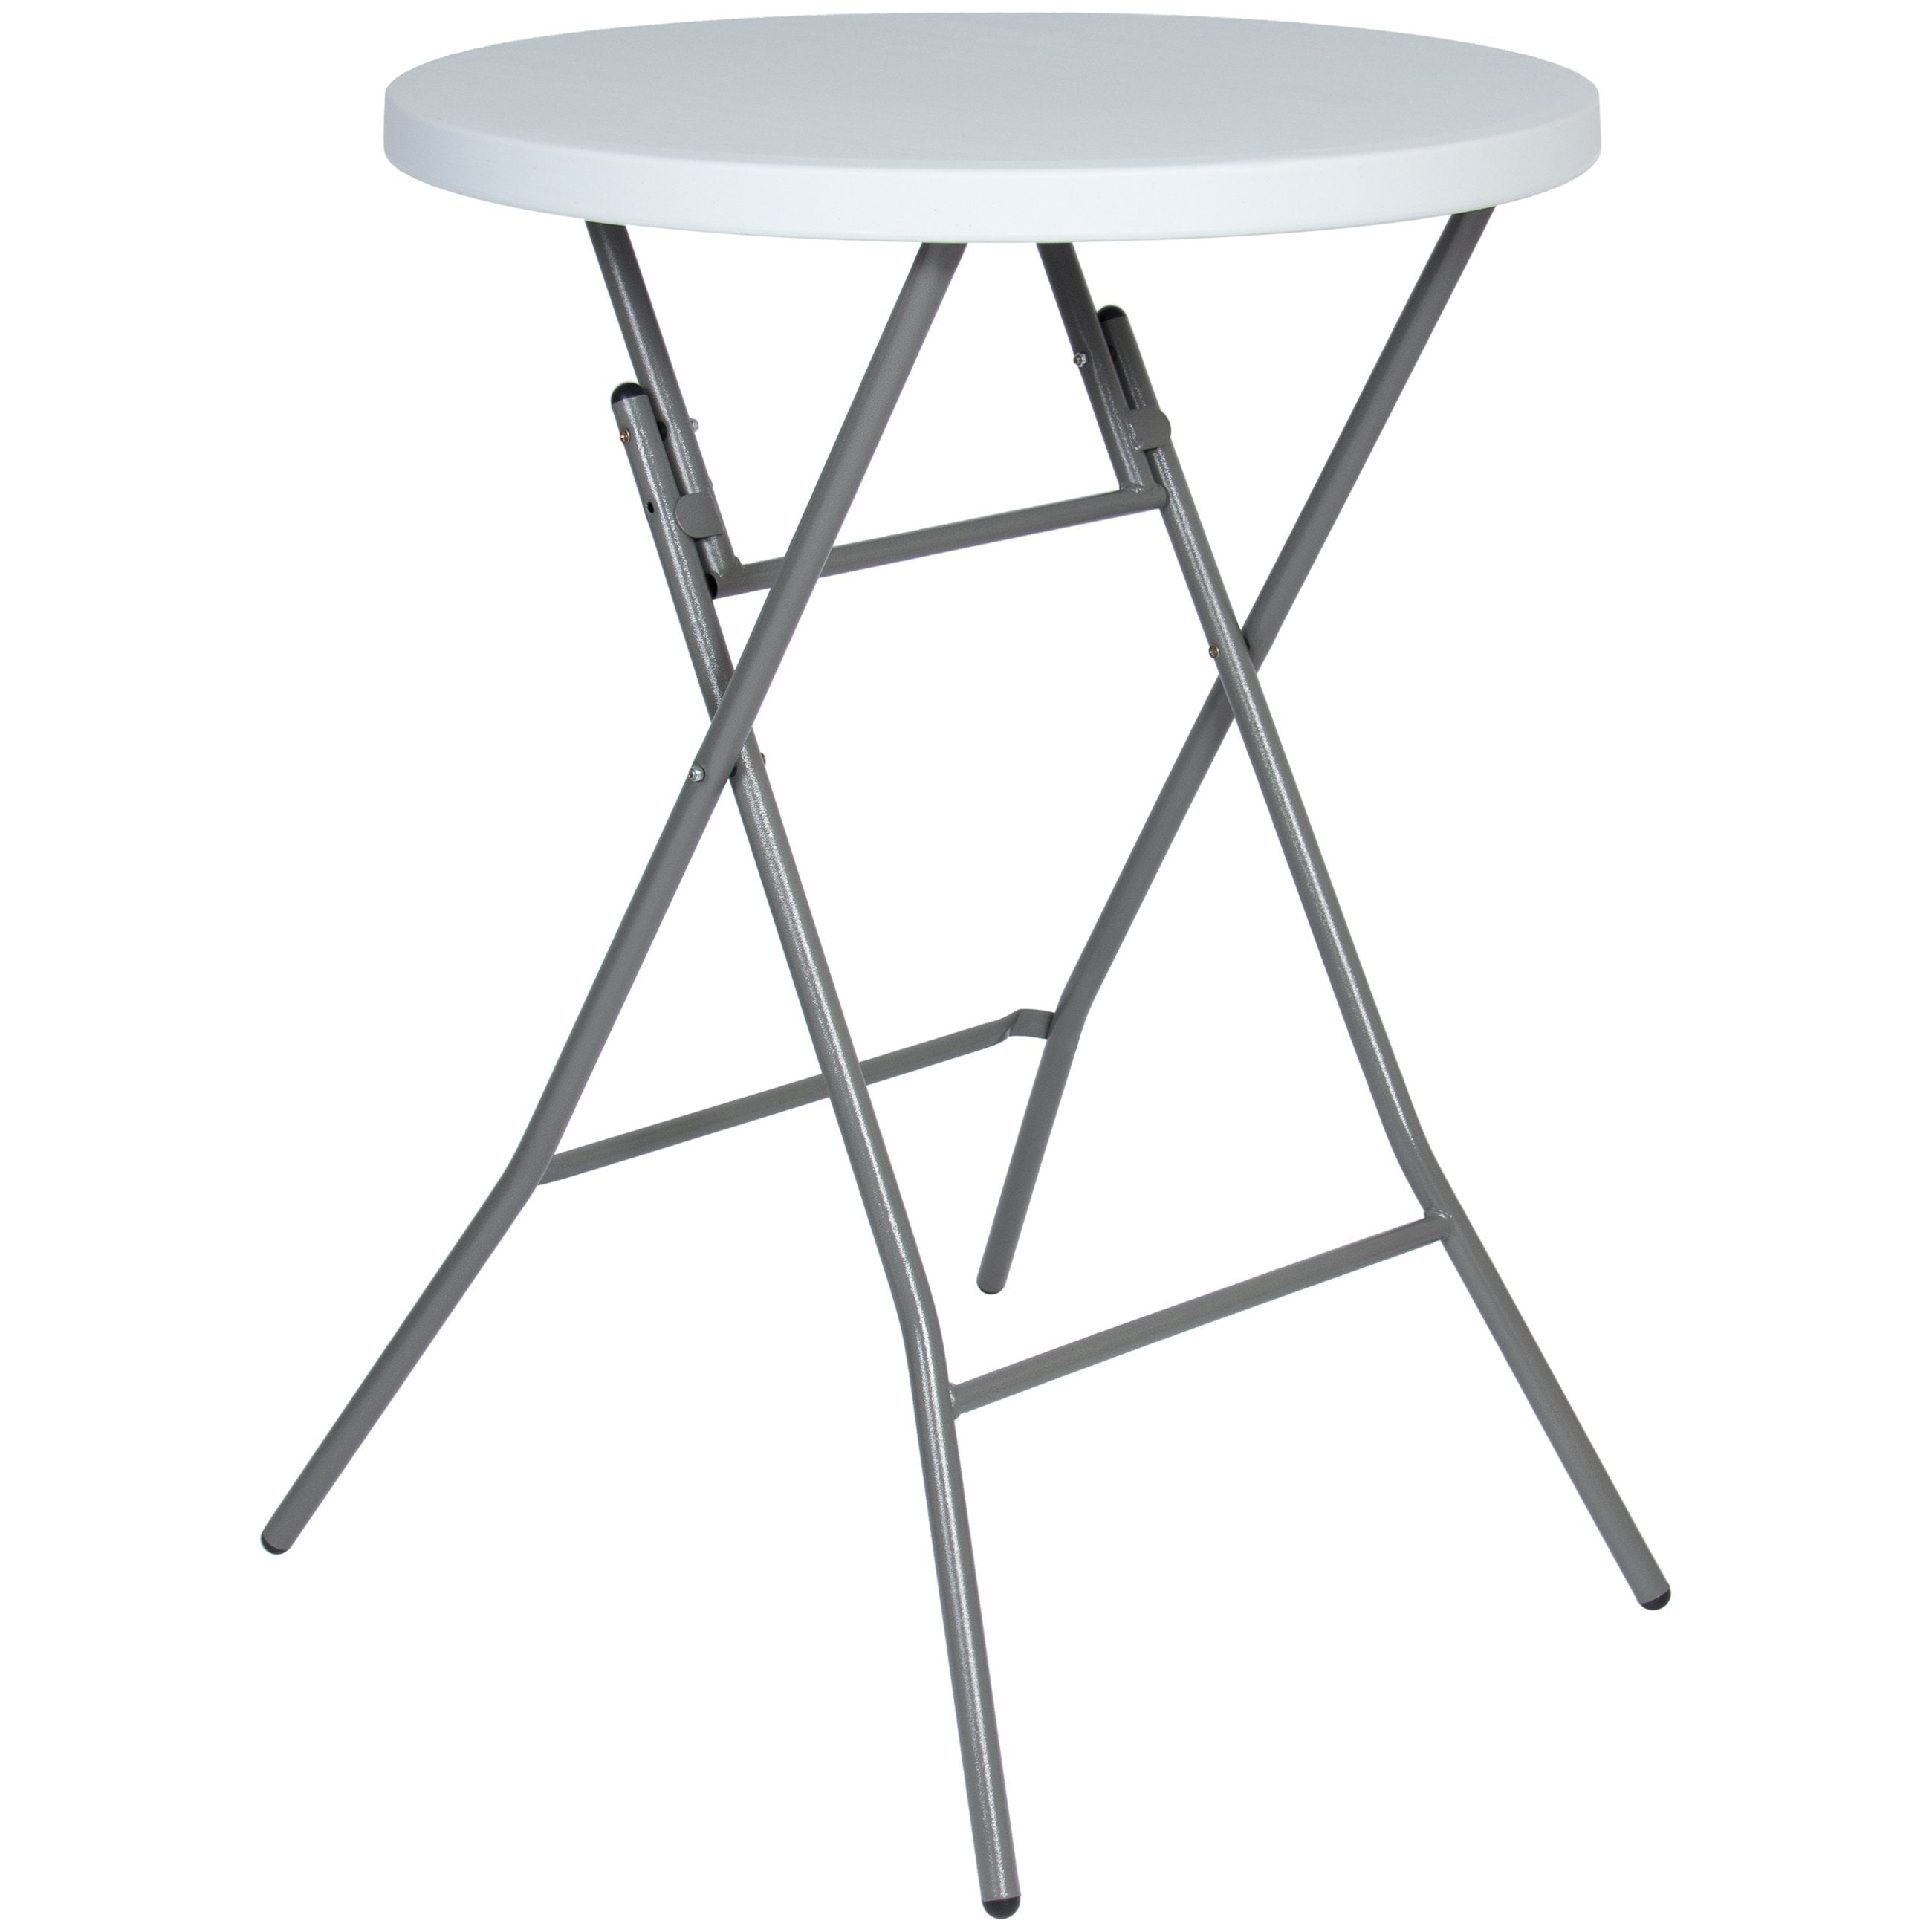 32in Indoor/Outdoor Folding Bar Table - White